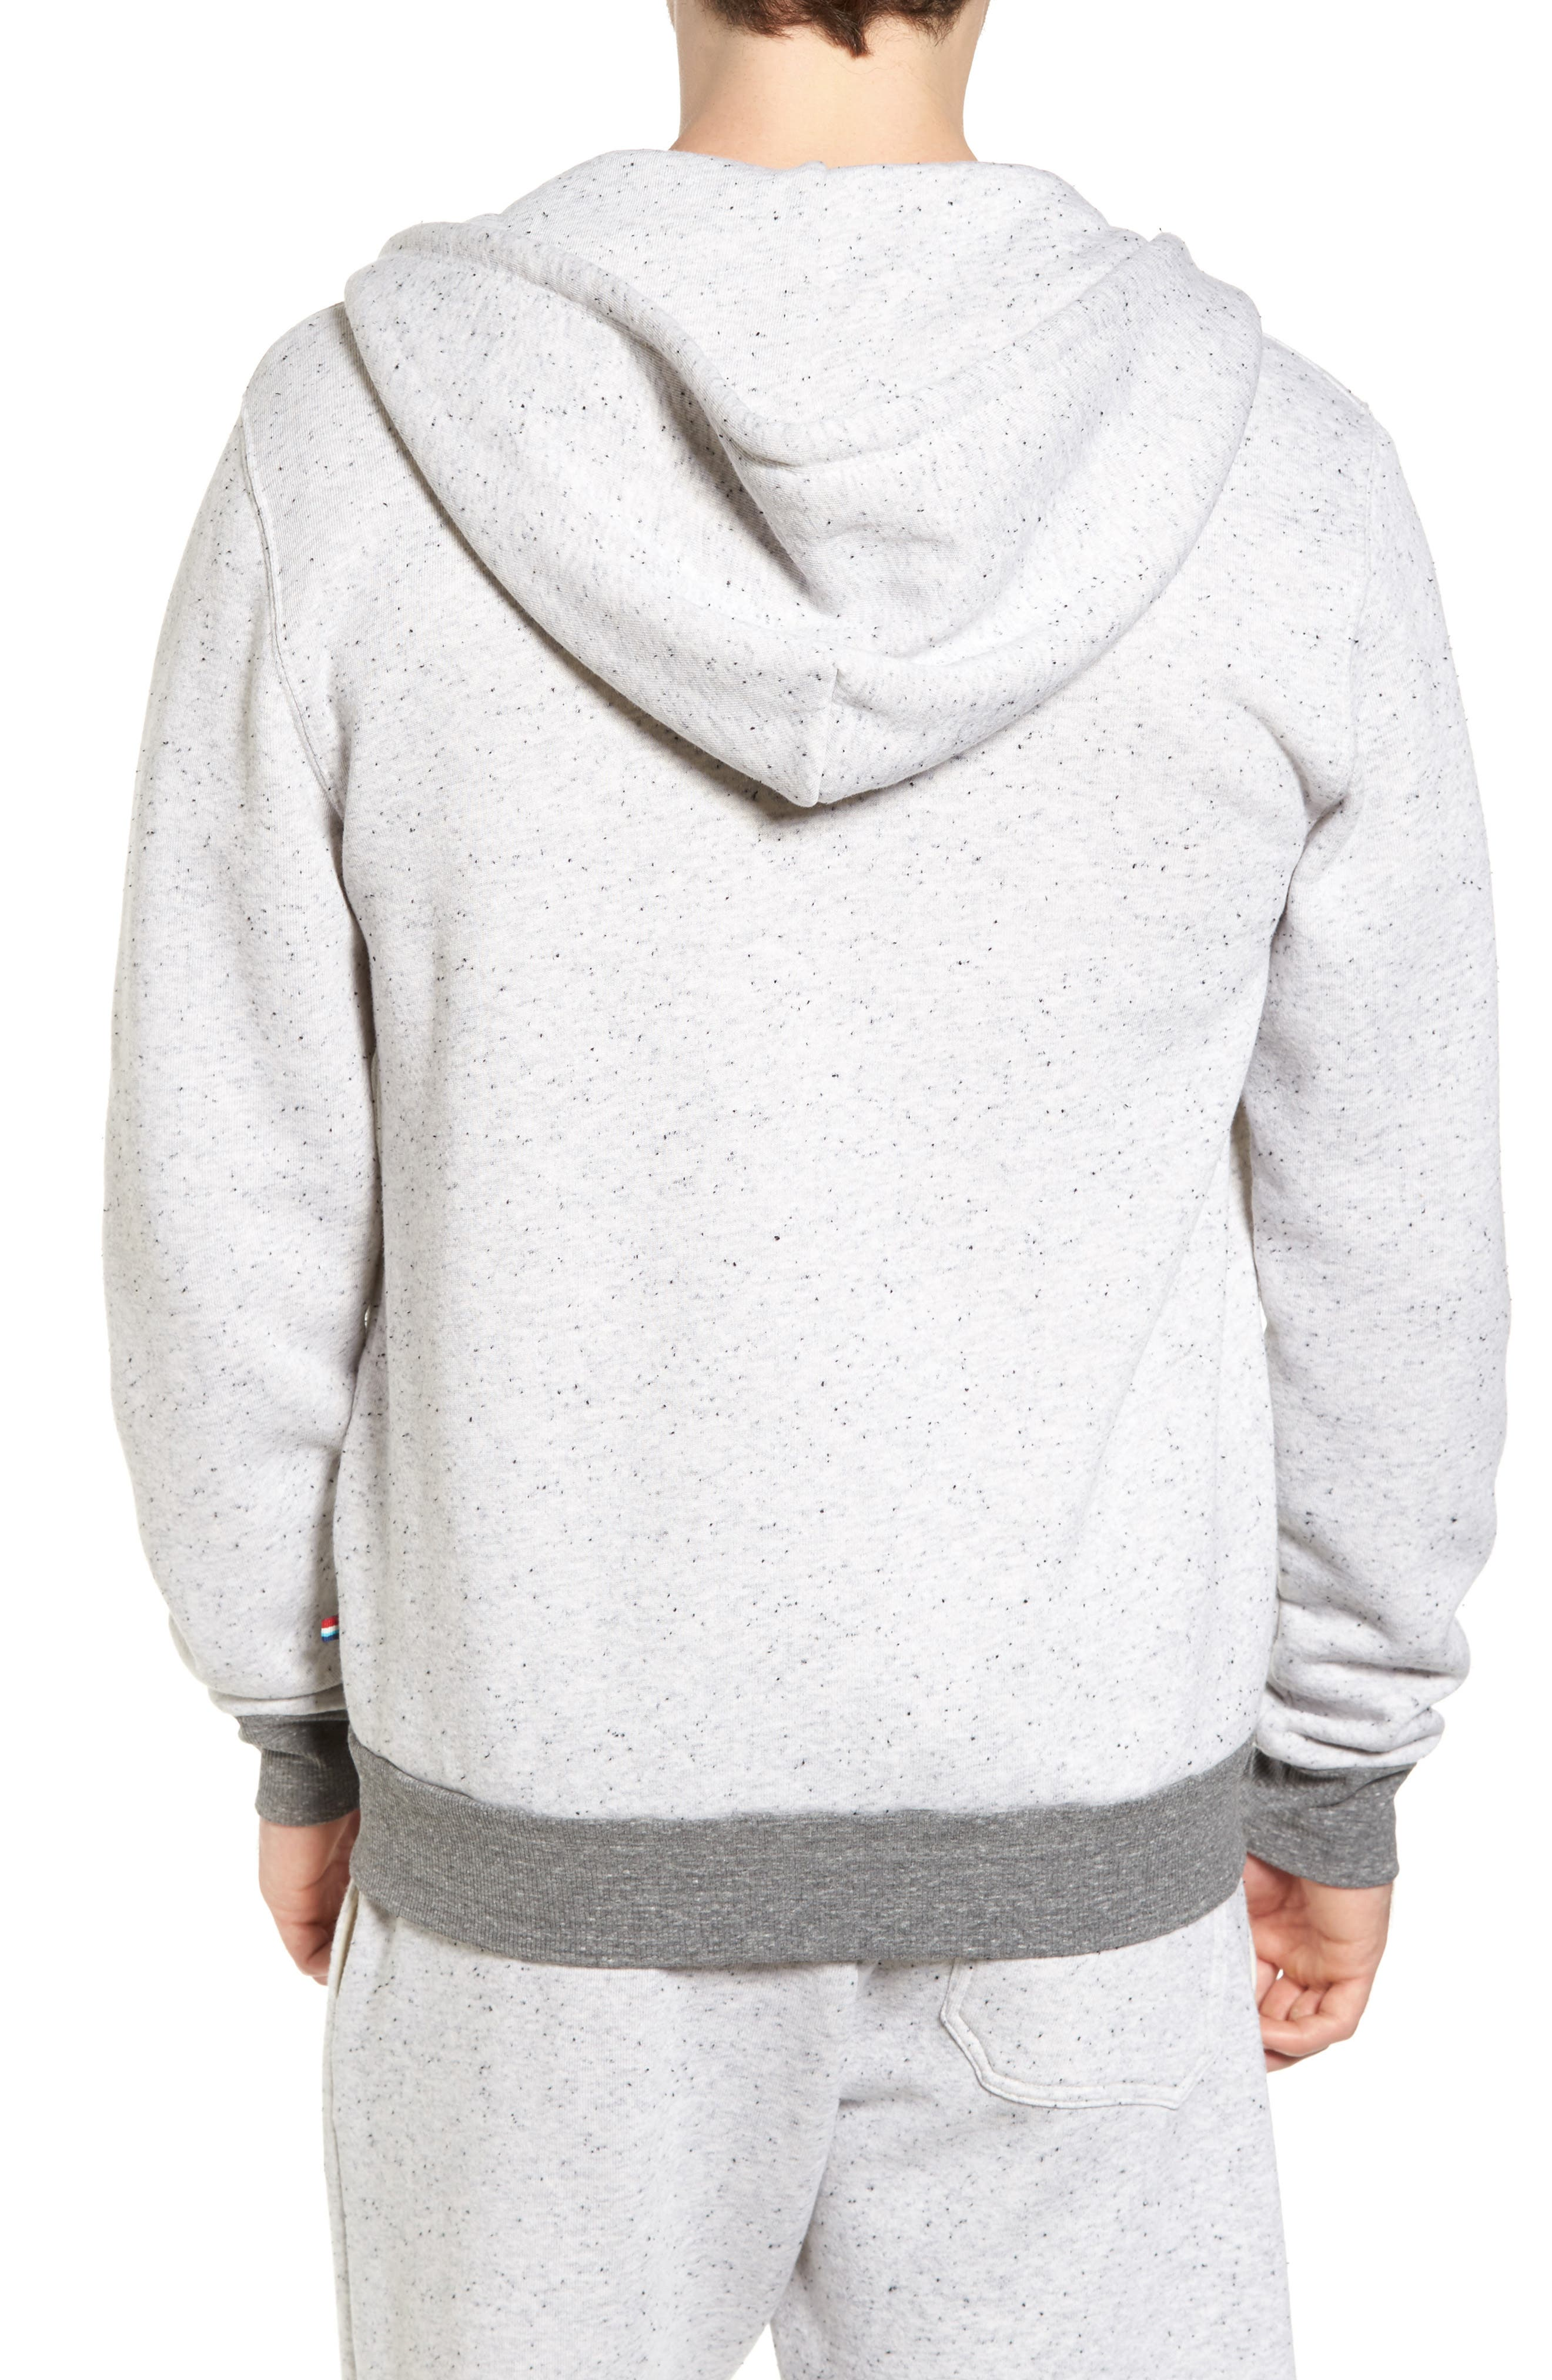 Peppered French Terry Hoodie,                             Alternate thumbnail 2, color,                             050